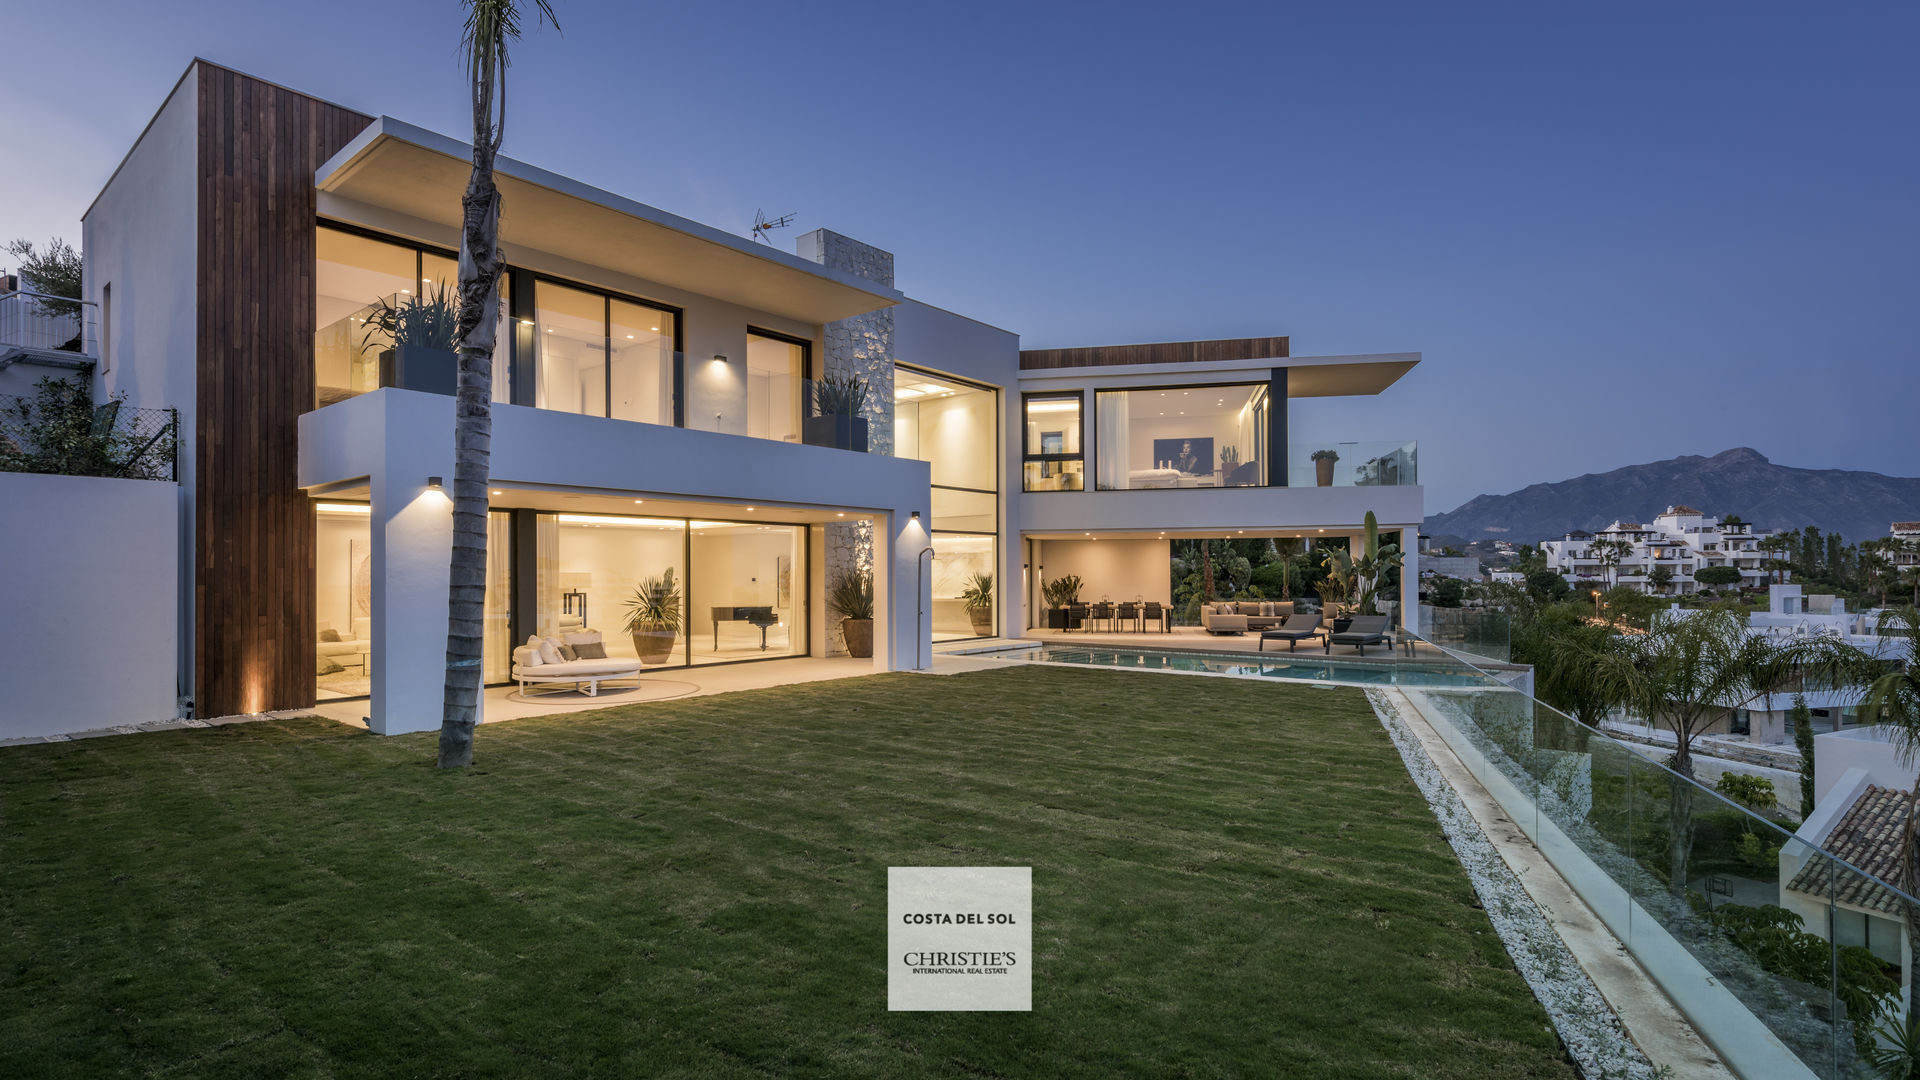 Marbella Real Estate, private sales